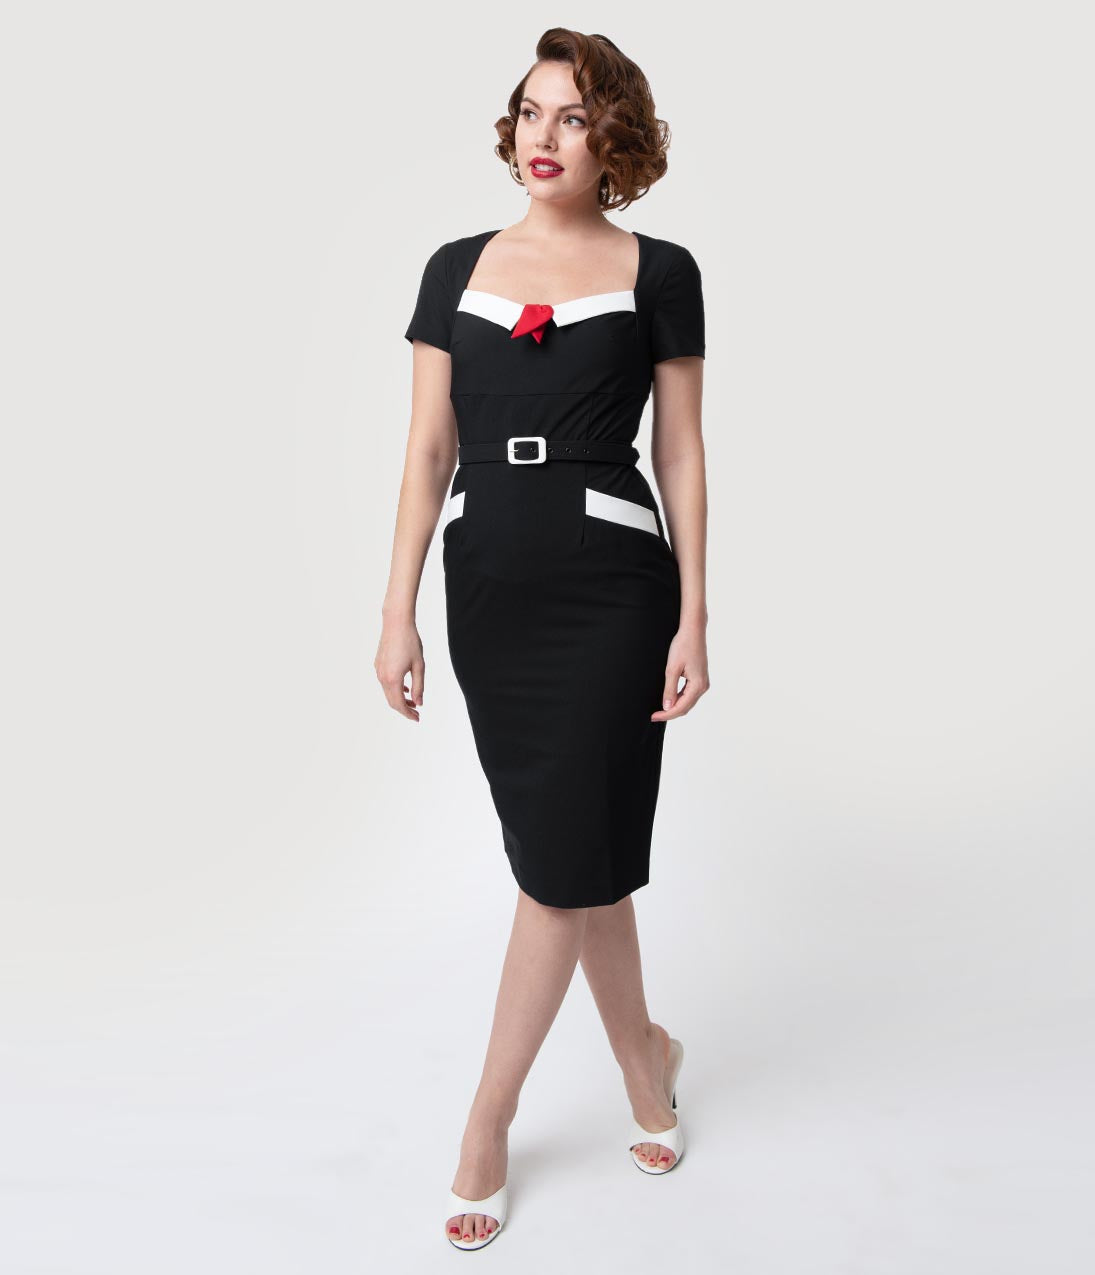 1950s Swing Dresses | 50s Swing Dress Glamour Bunny 1960S Black  White Short Sleeve Ella Pencil Dress $122.00 AT vintagedancer.com